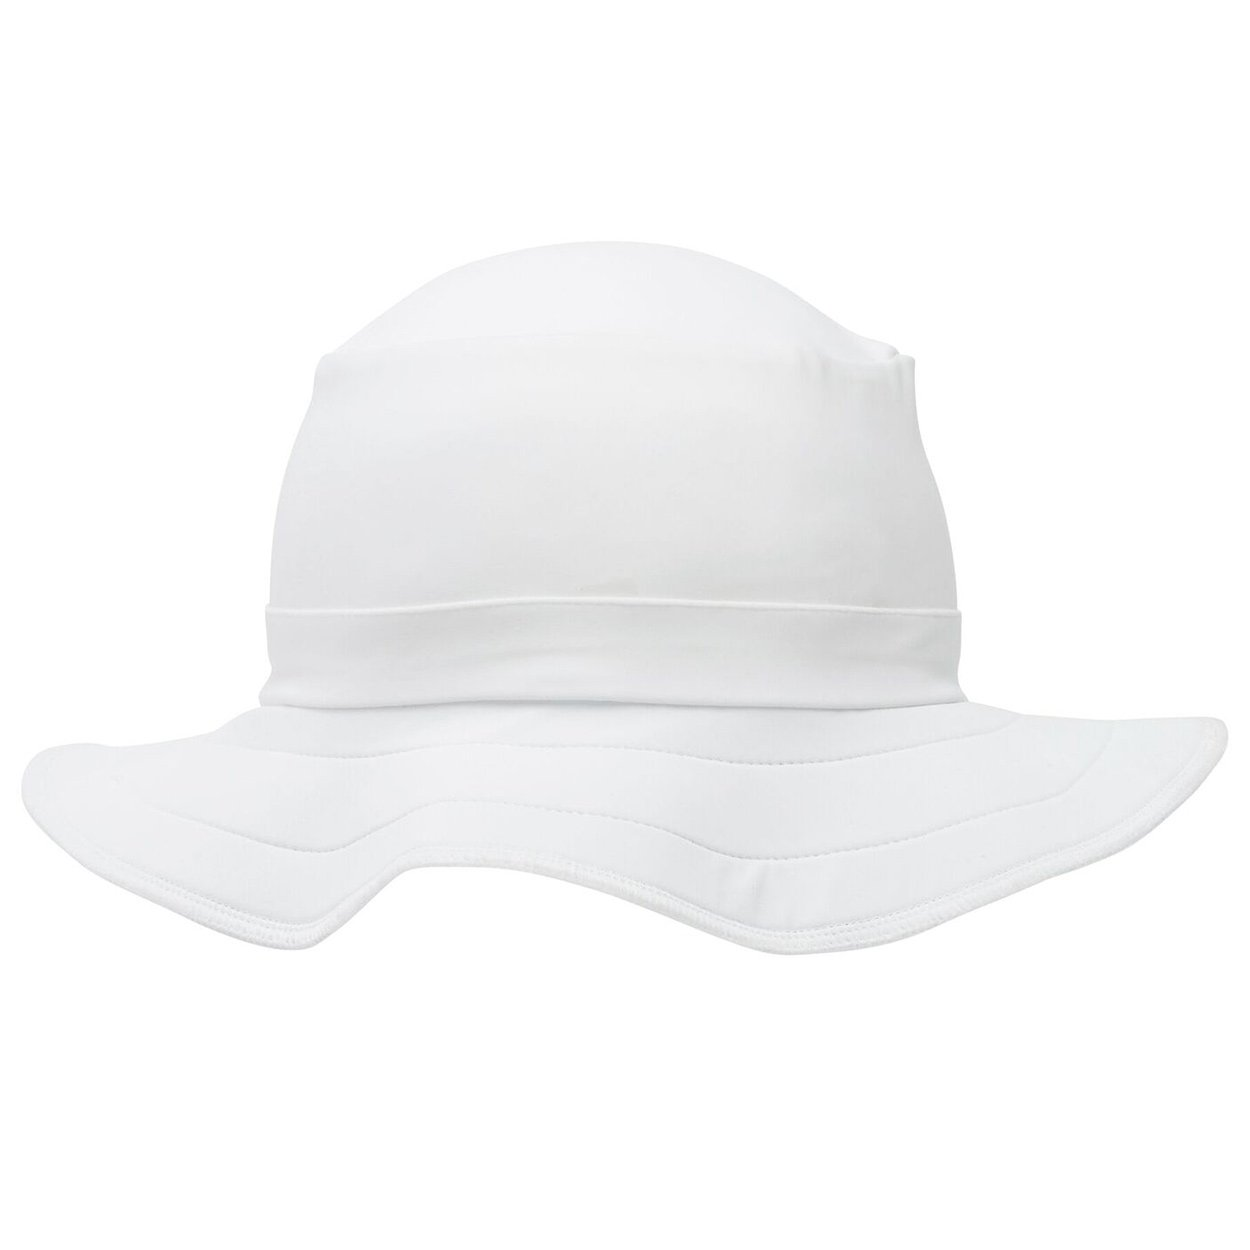 White Funky Bucket Hat Upf 50+